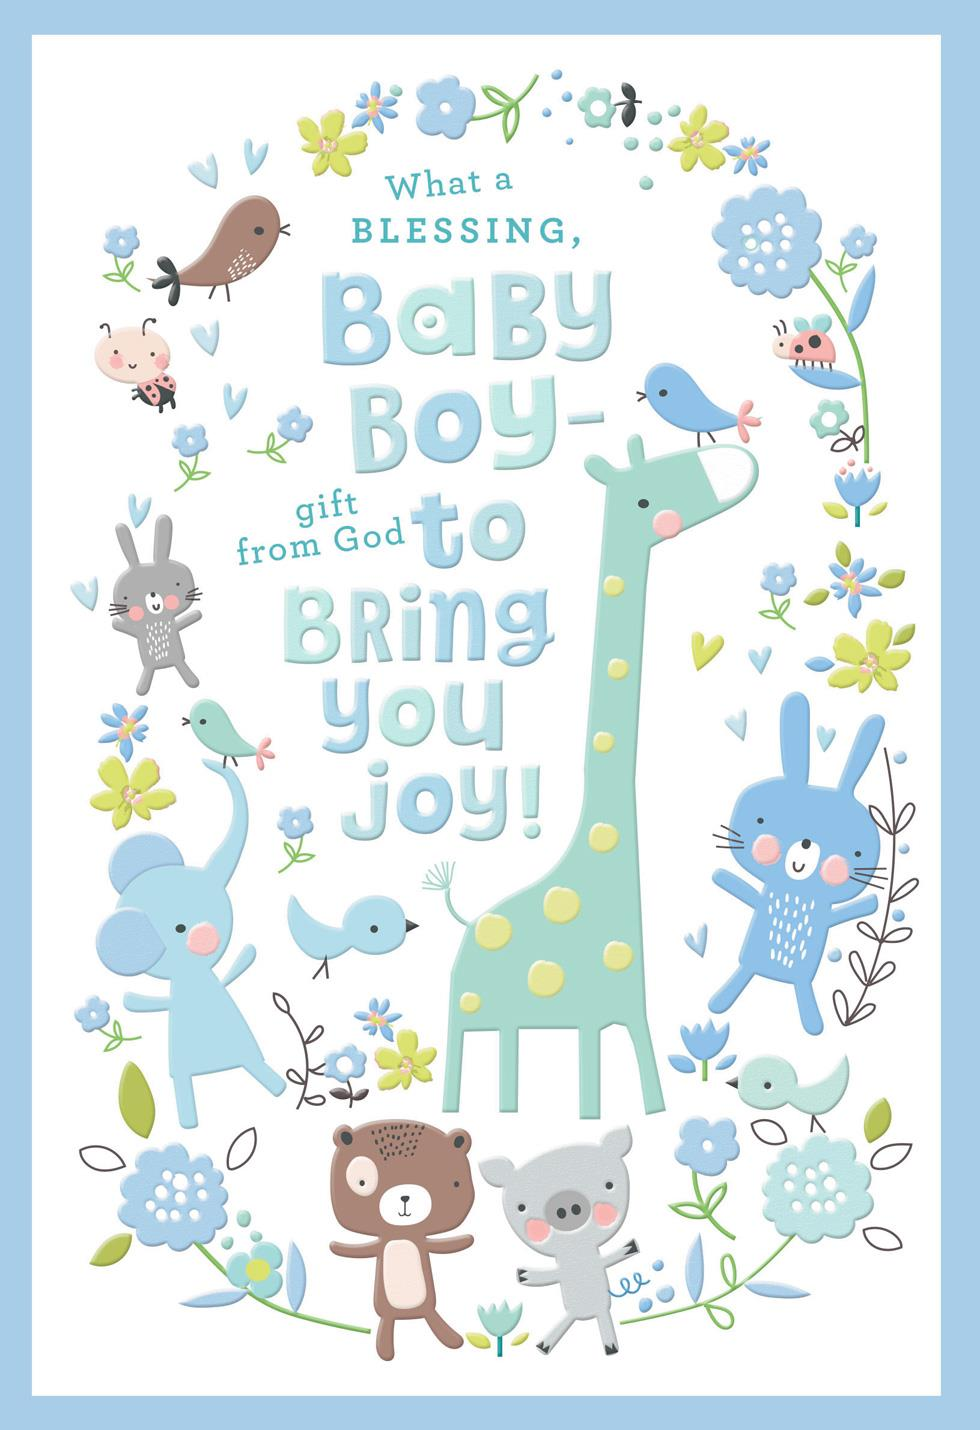 giraffe and animal friends new baby boy card